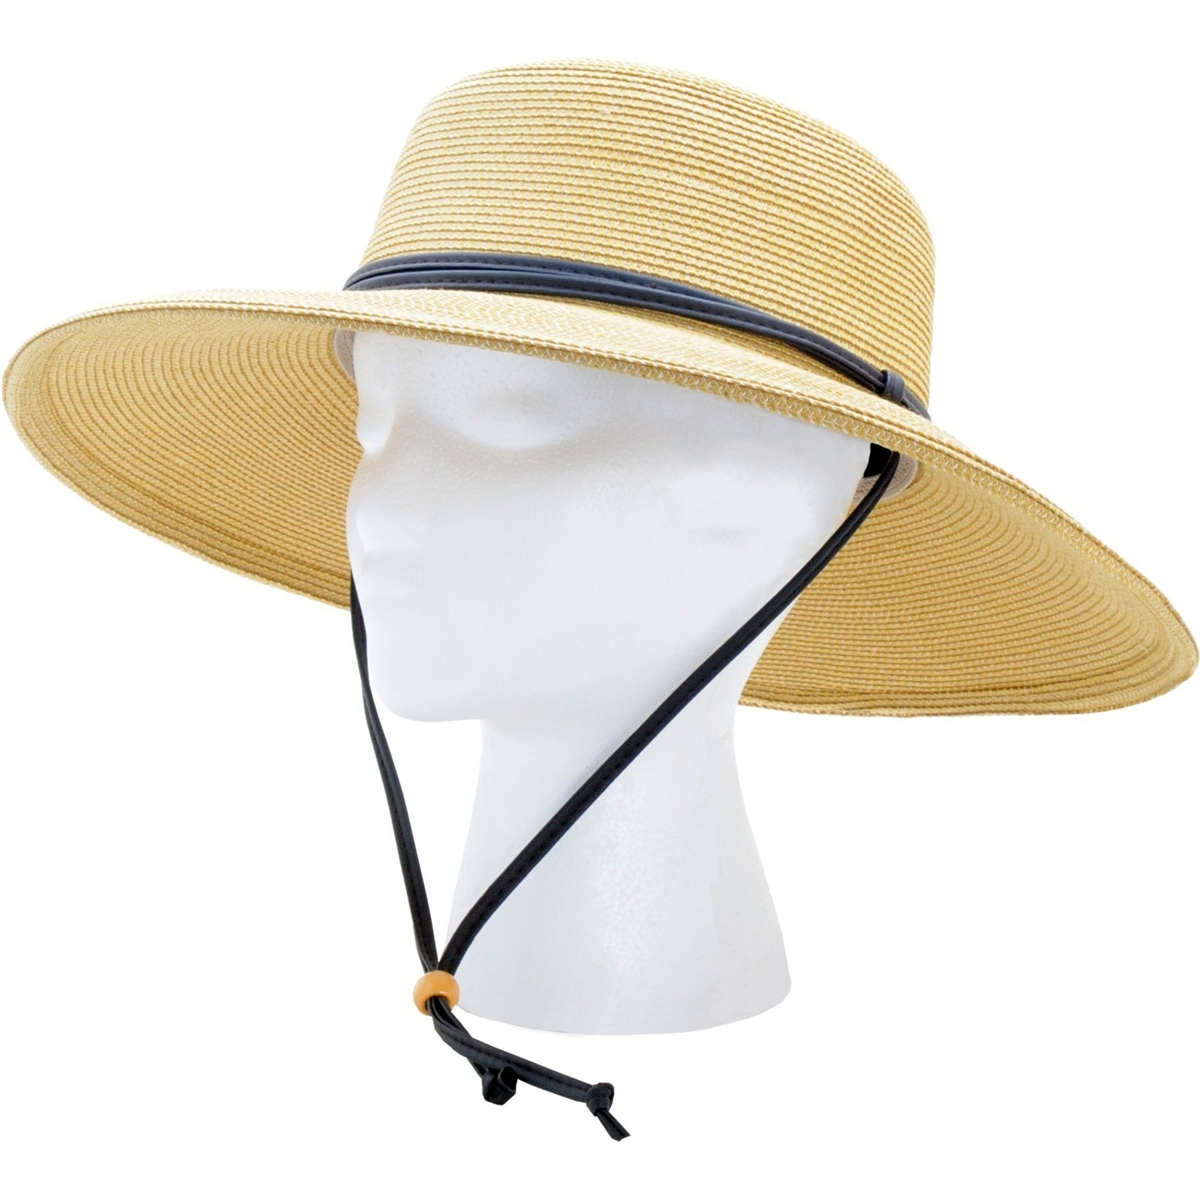 Sloggers Womens Braided Sun Hat with Wind Lanyard UPF 50 Maximum